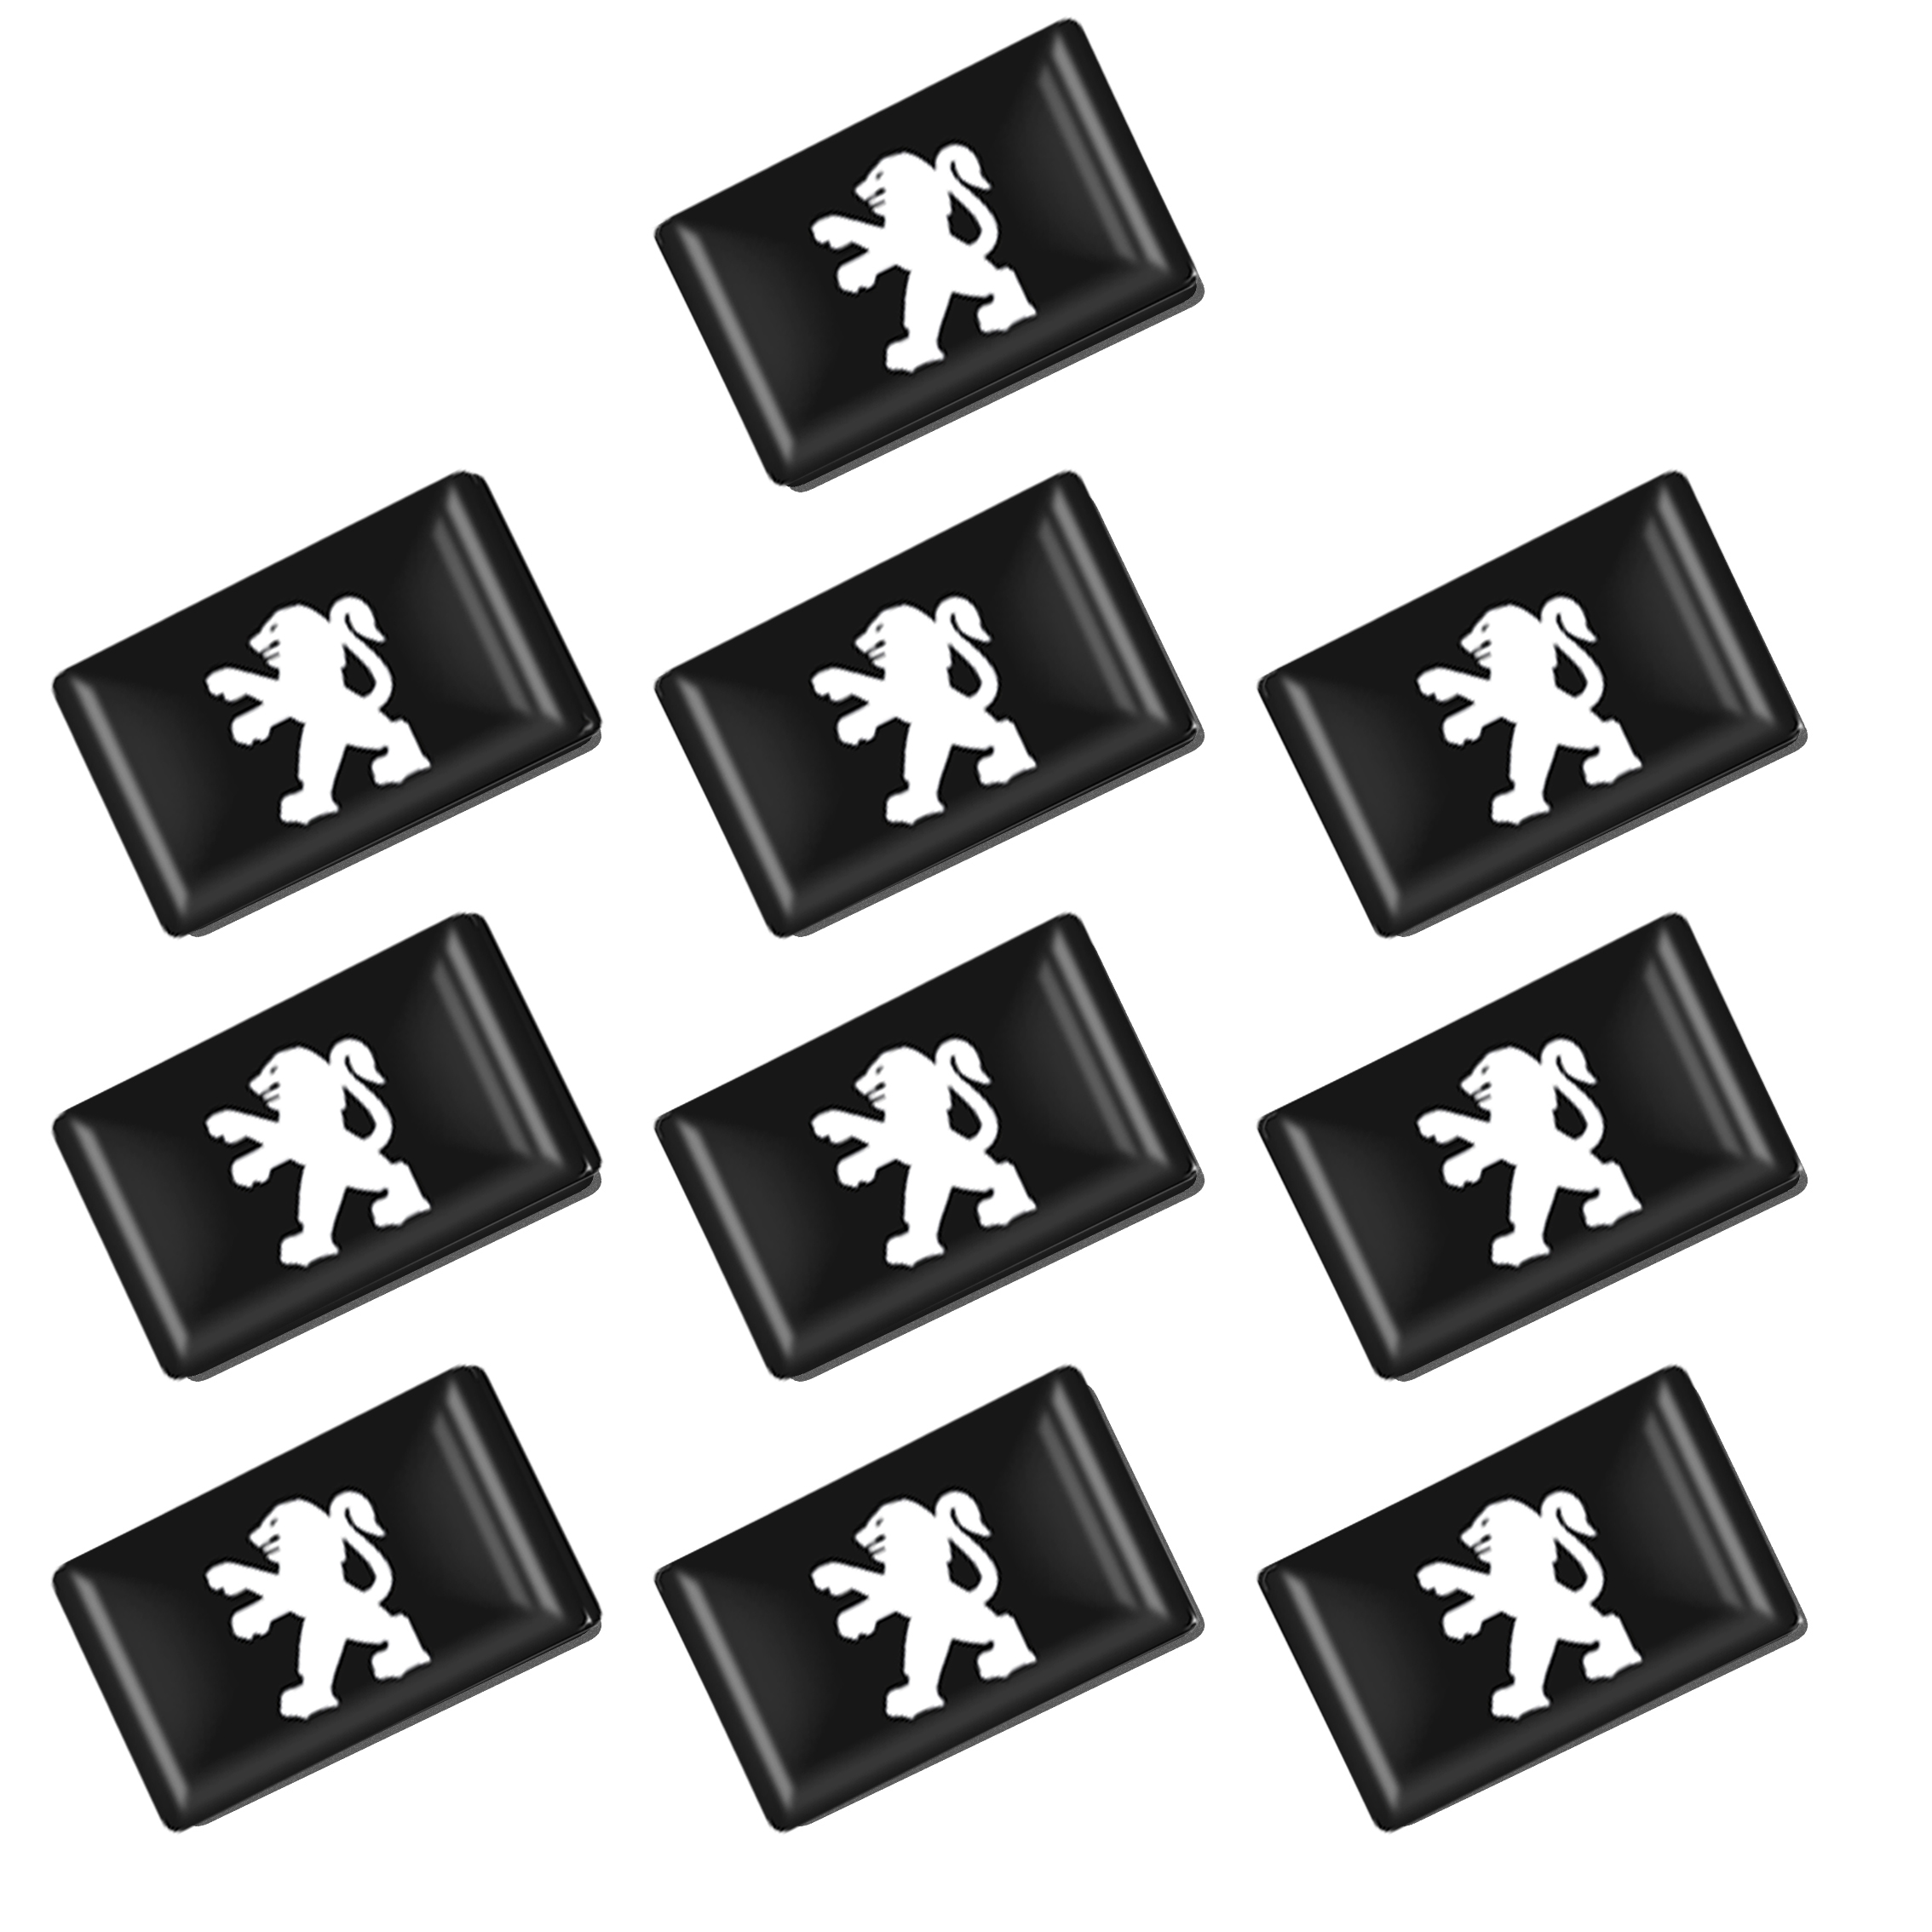 10pcs/set Car Small Interior Decorated 3D Epoxy Sticker Emblems For For Peugeot 206 207 208 306 307 308 407 408 508 Accessories